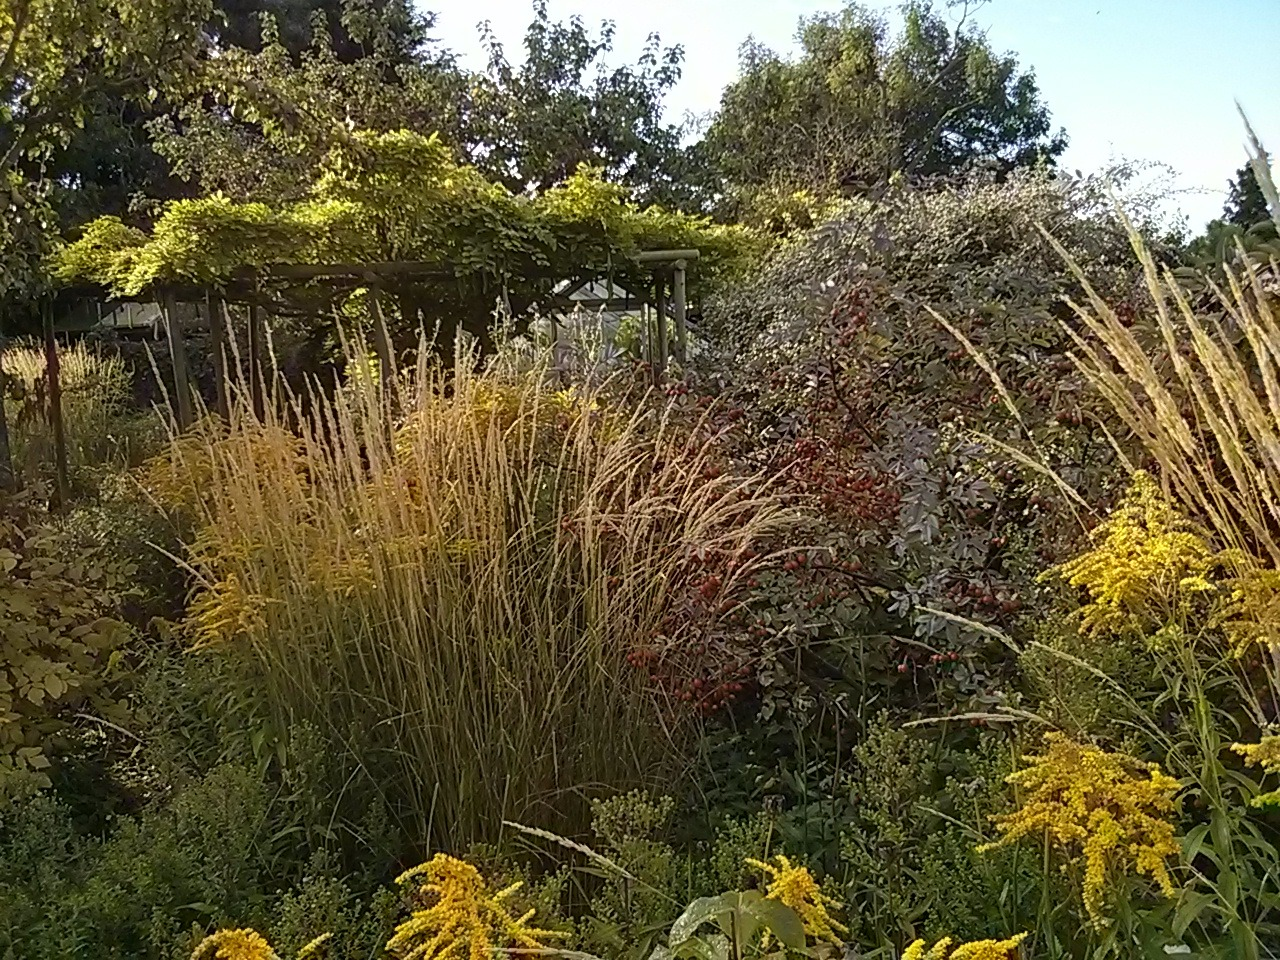 A definite touch of autumn in the garden this morning; looking good in some early sunlight.